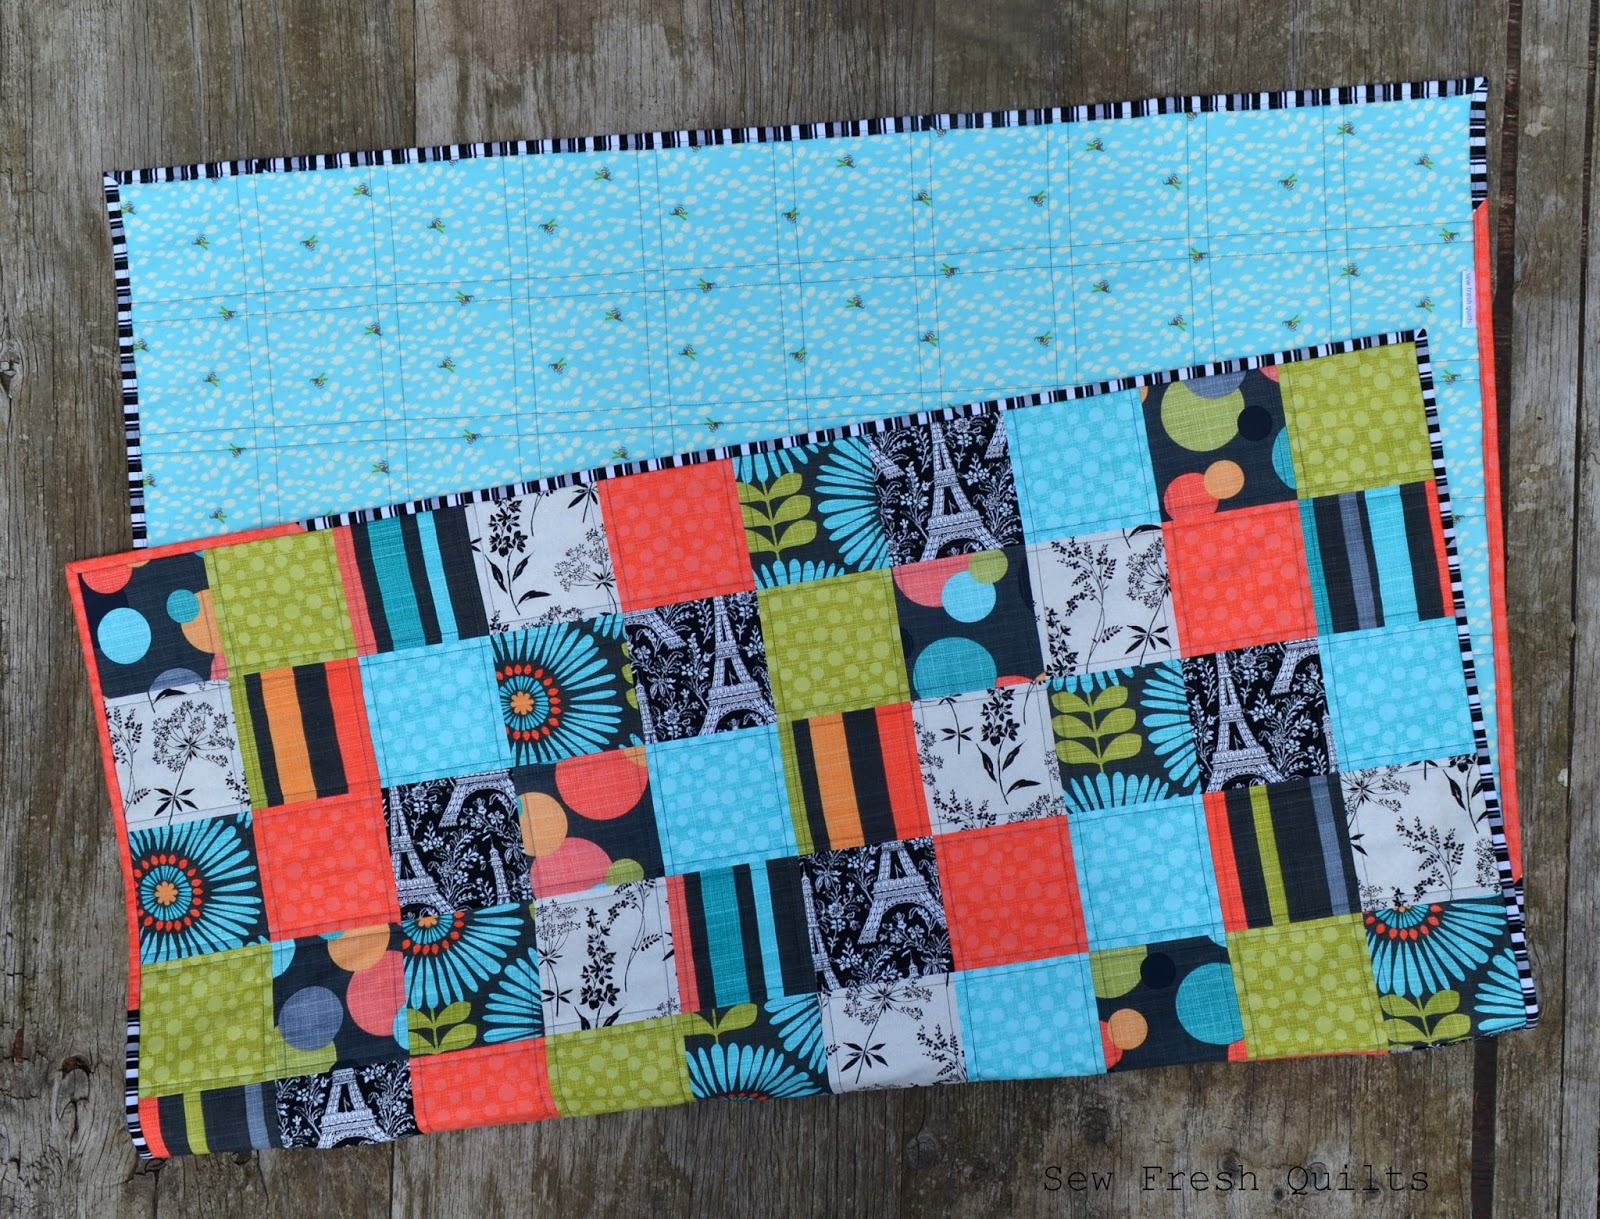 Sew Fresh Quilts Easy Patchwork Quilt Tutorial Amp Giveaway